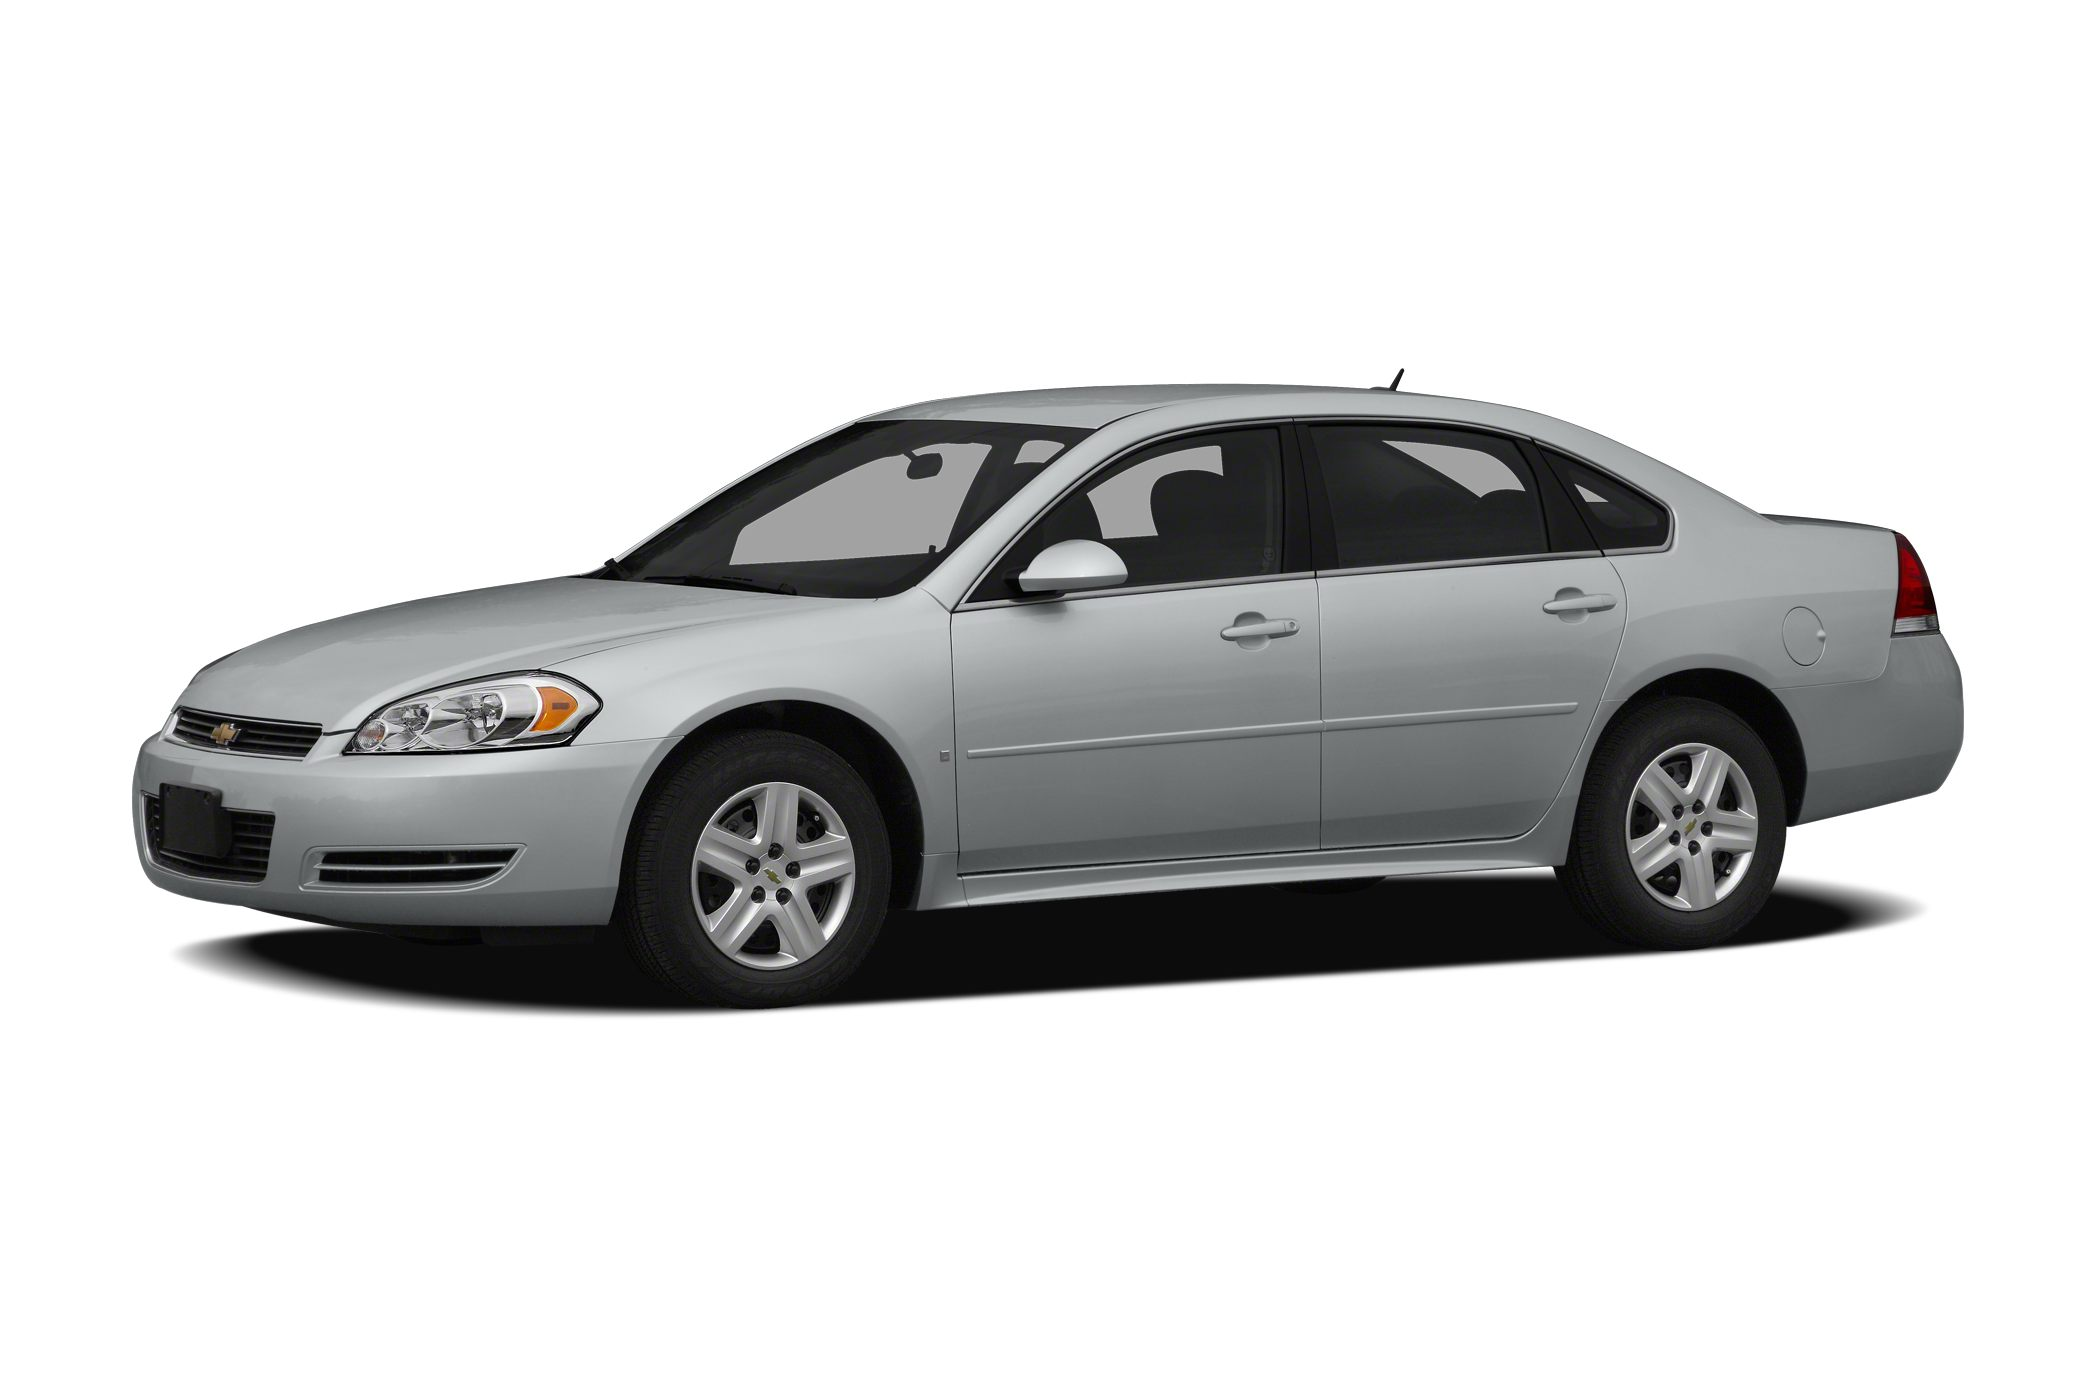 2012 Chevrolet Impala LS Sedan for sale in Westmoreland for $0 with 0 miles